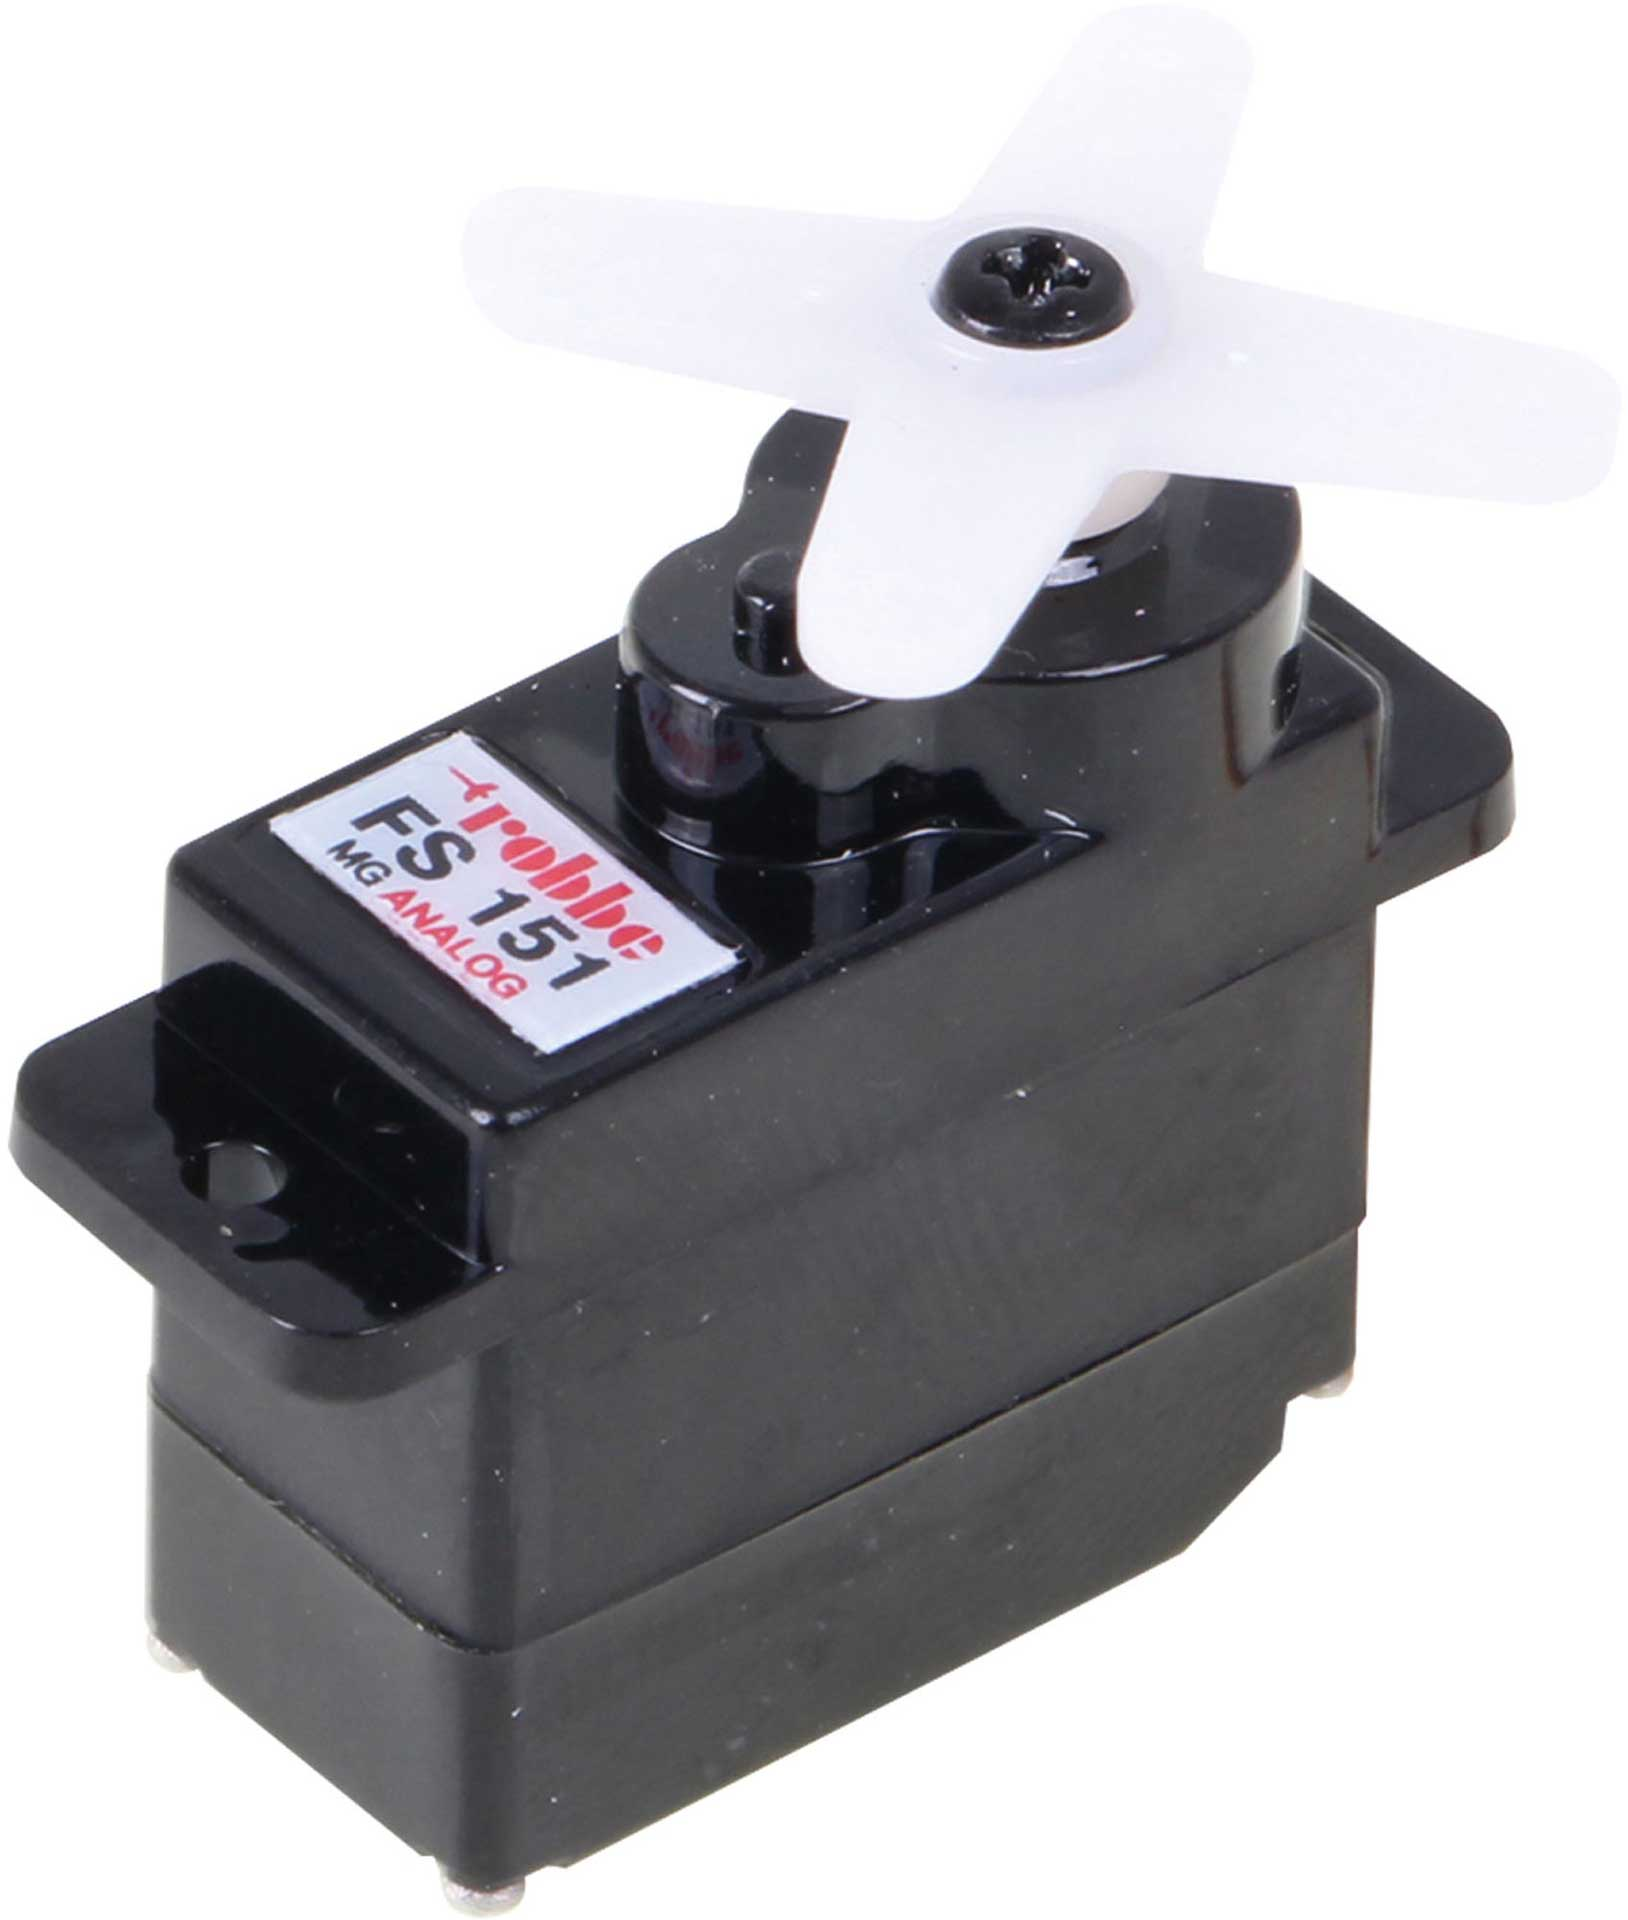 ROBBE FS 151 MG ANALOG SERVO